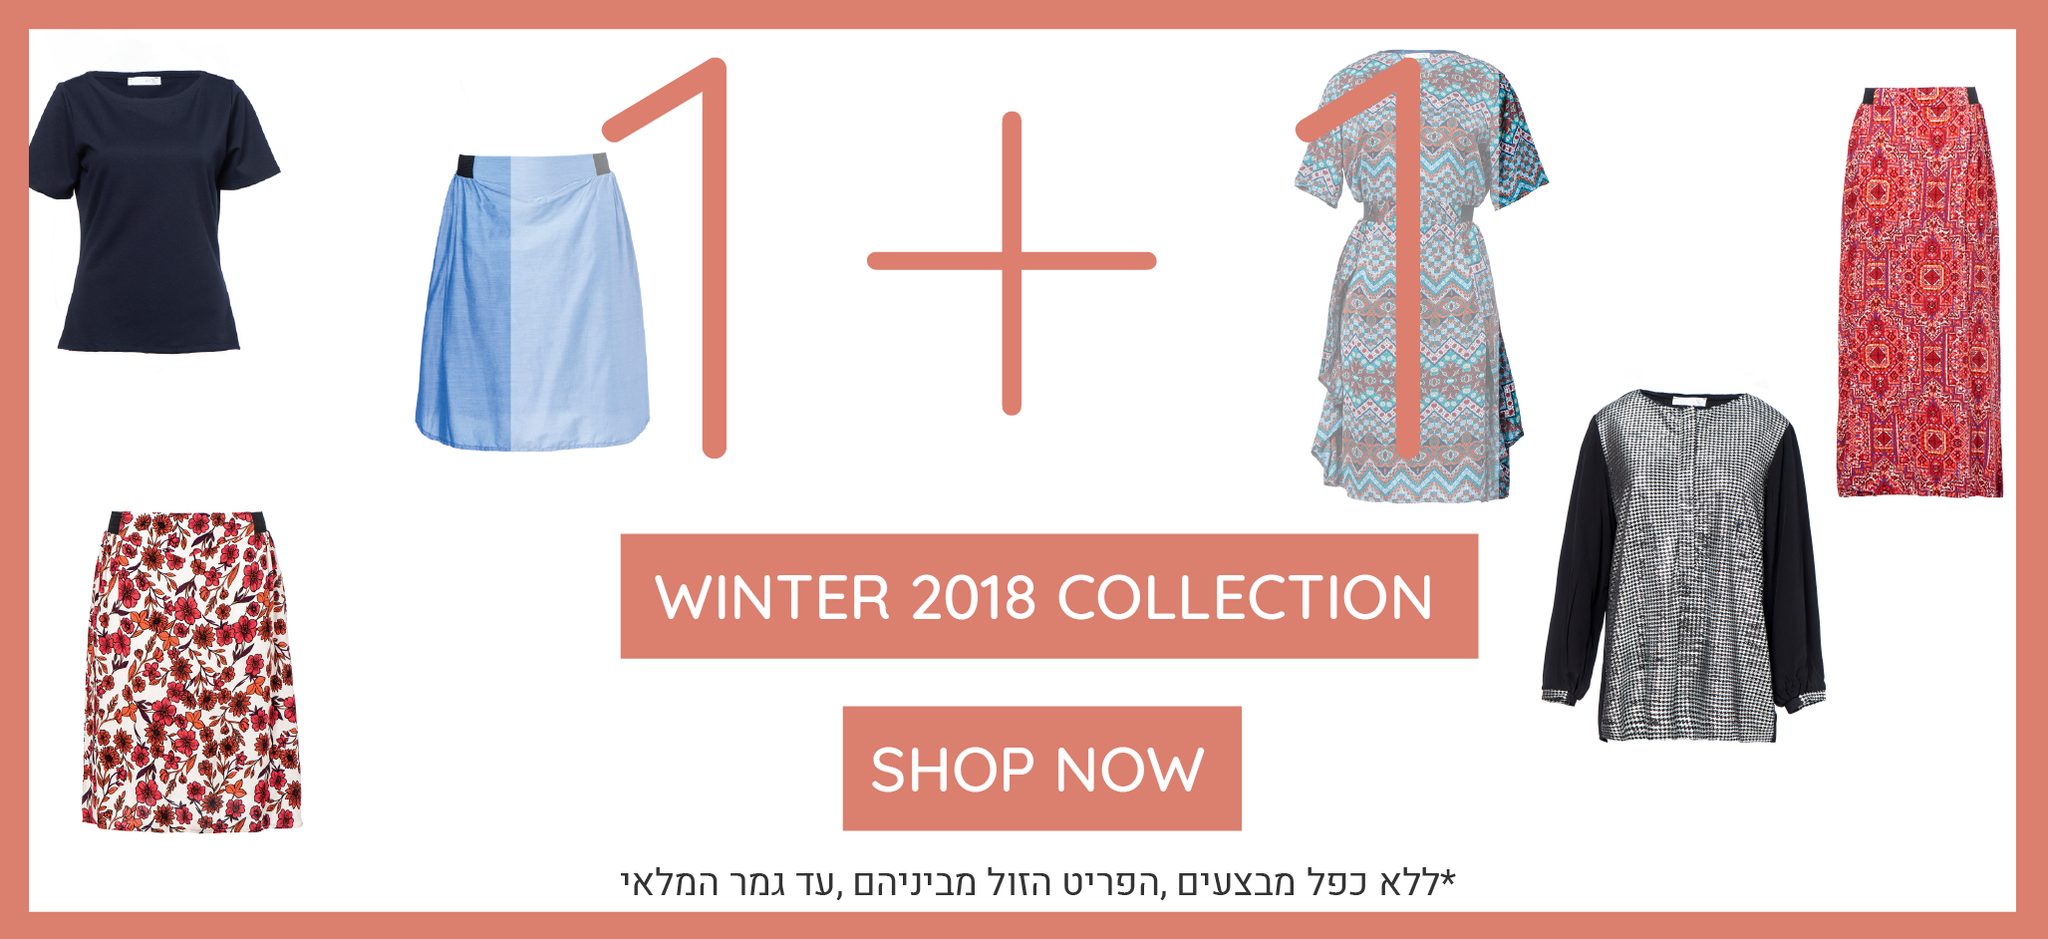 Shani Segev Winter Sale Buy One Get One